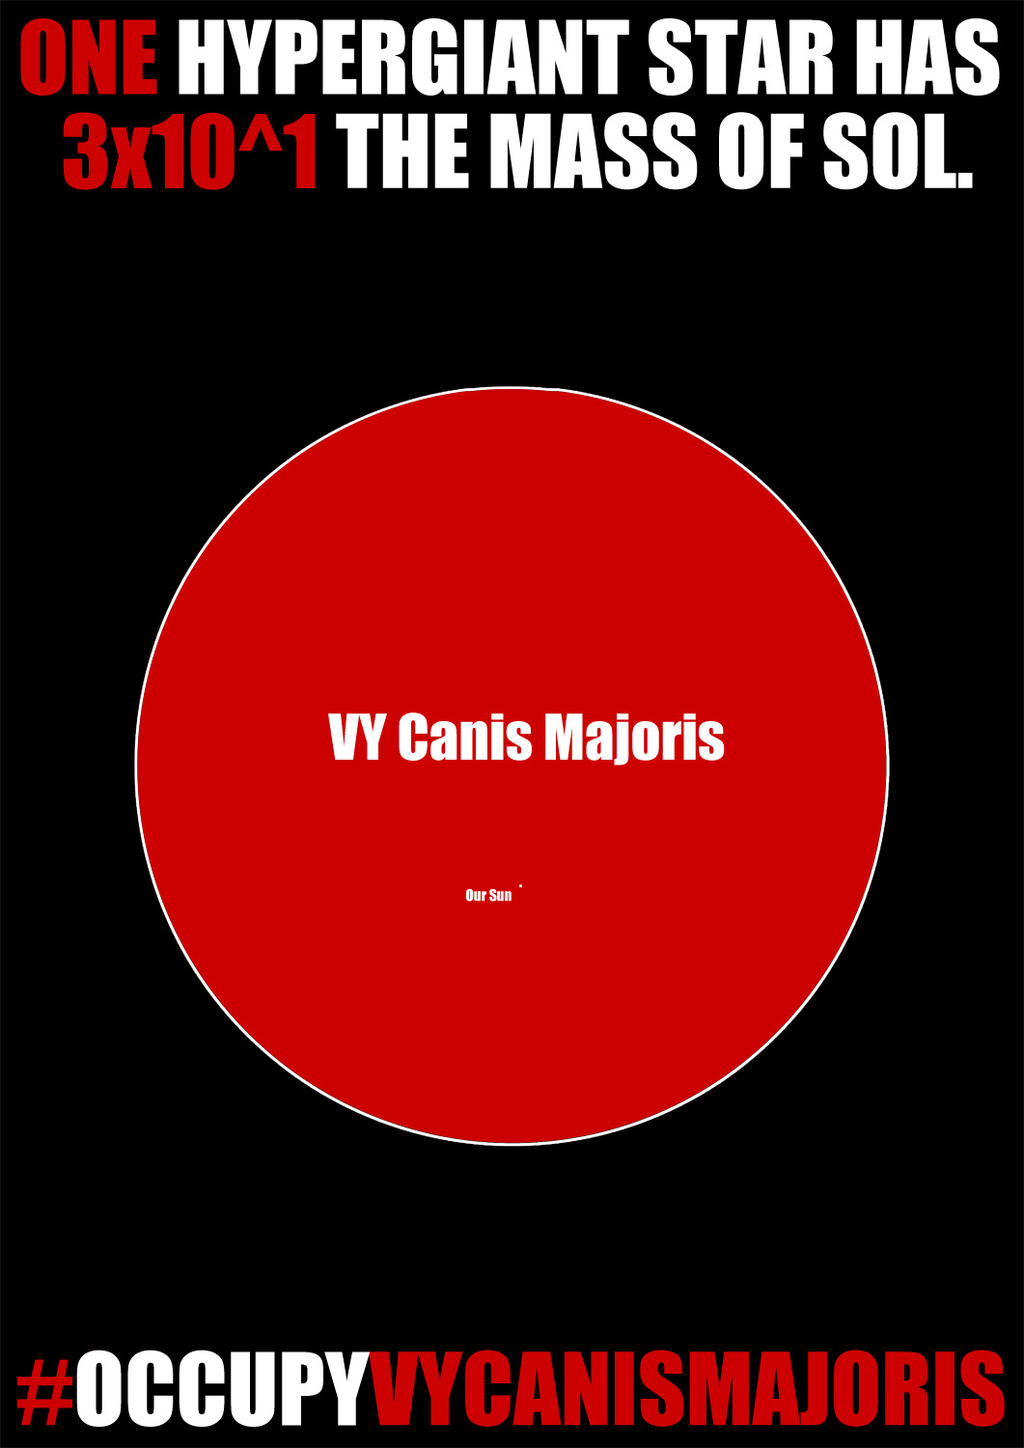 #occupyvycanismajoris v3